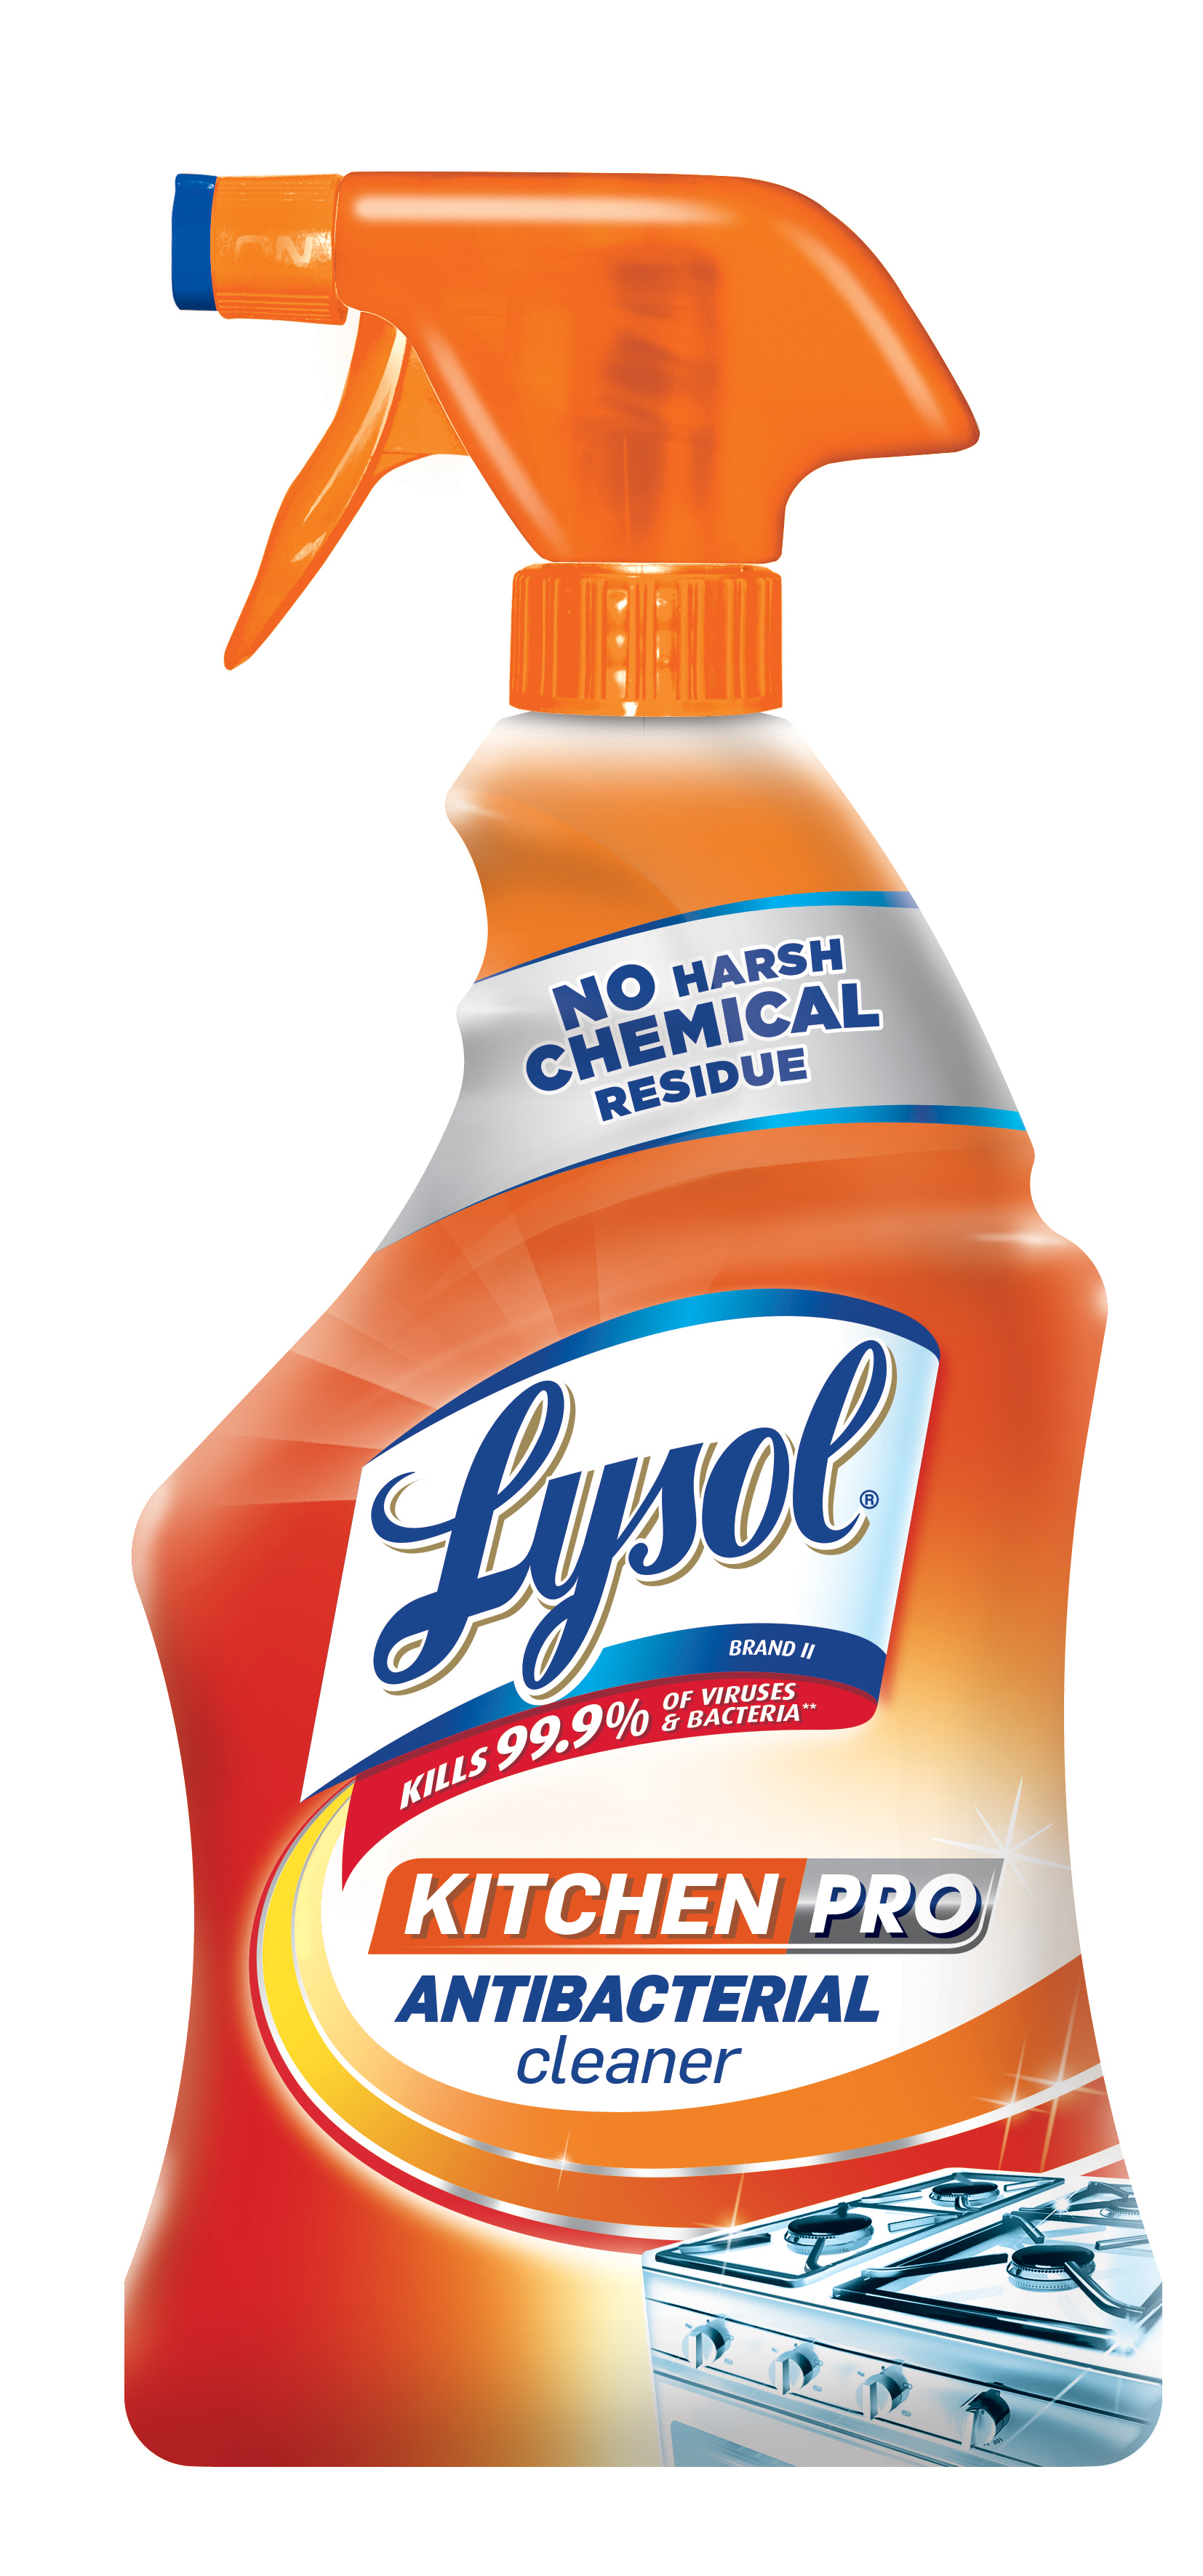 LYSOL® Kitchen Pro Antibacterial Cleaner